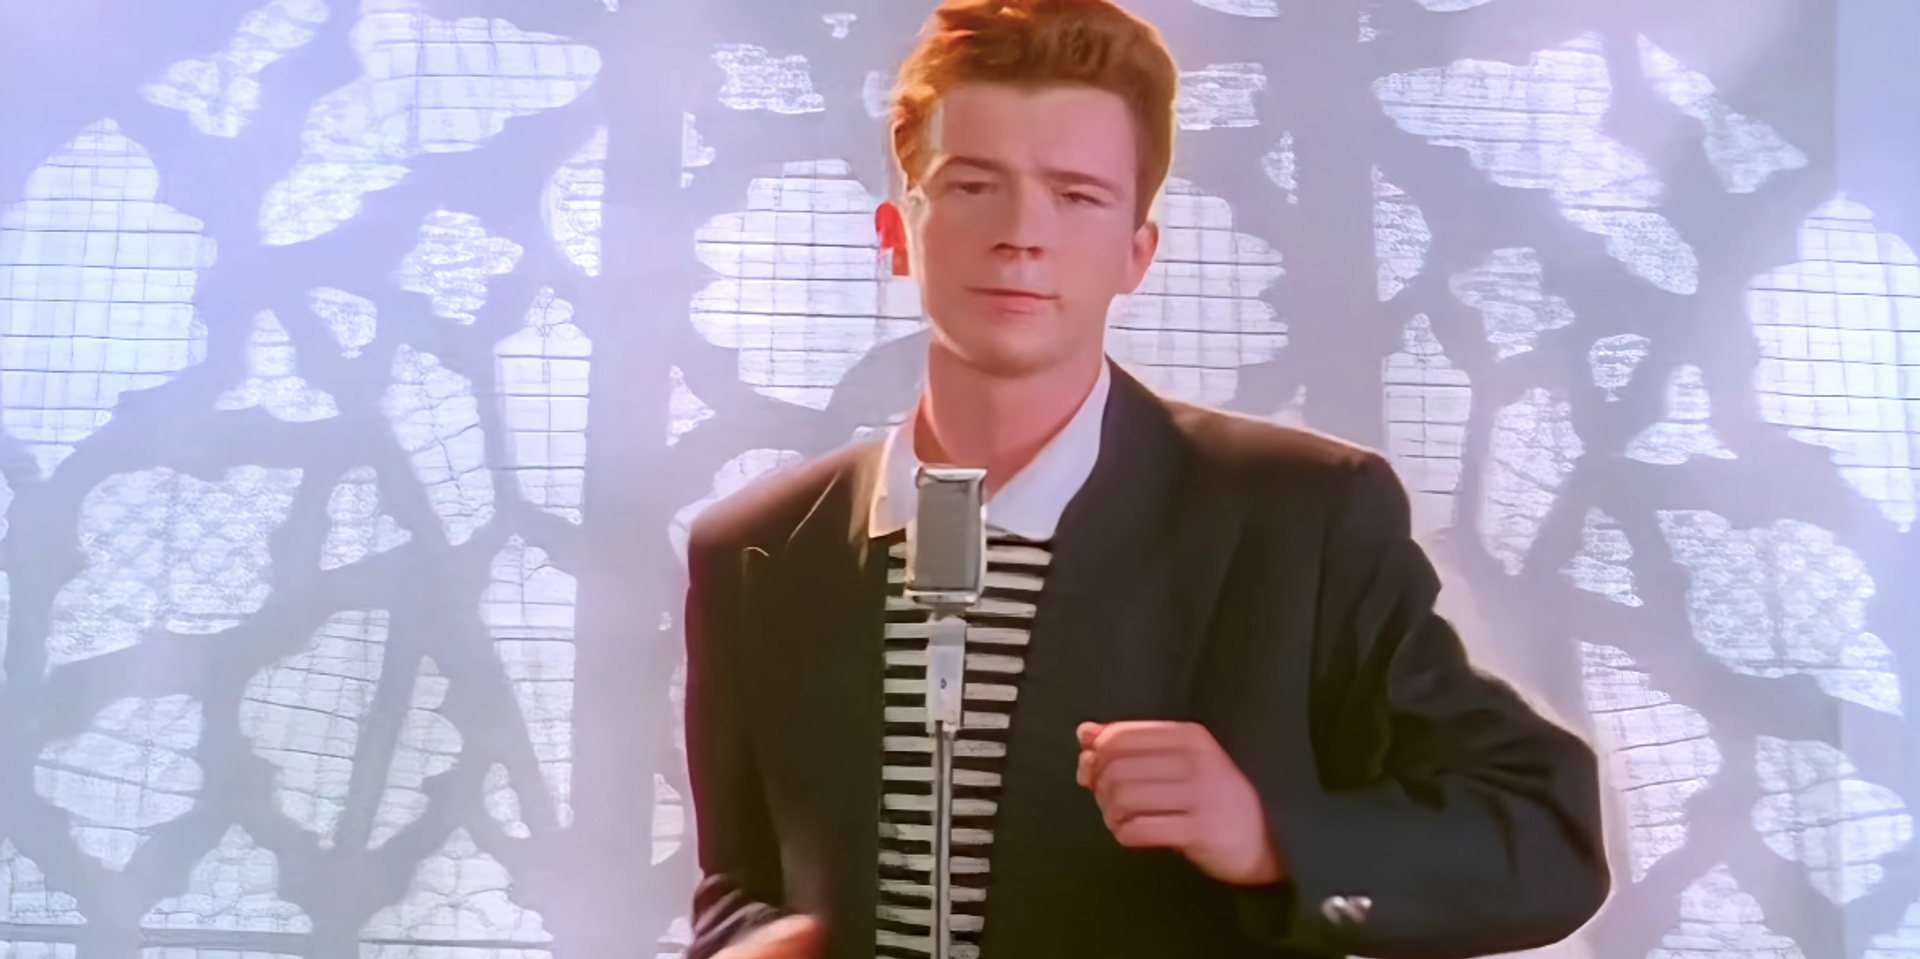 Rickroll in 4K with a remastered music video for Rick Astley's 'Never Gonna Give You Up'